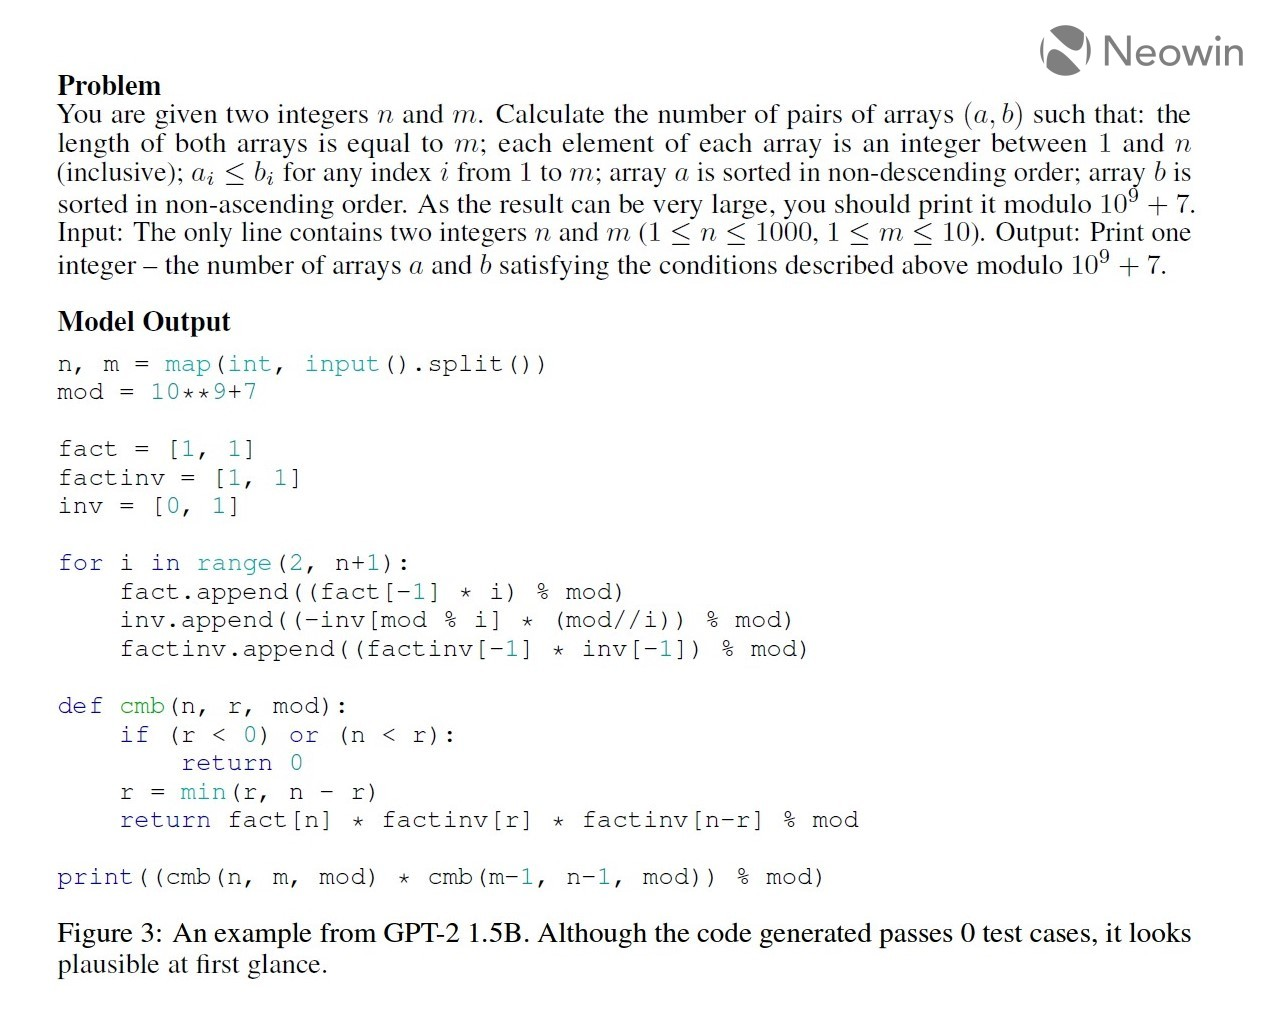 An example from GPT-2 15B Although the code generated passes 0 test cases it looks plausible at firs